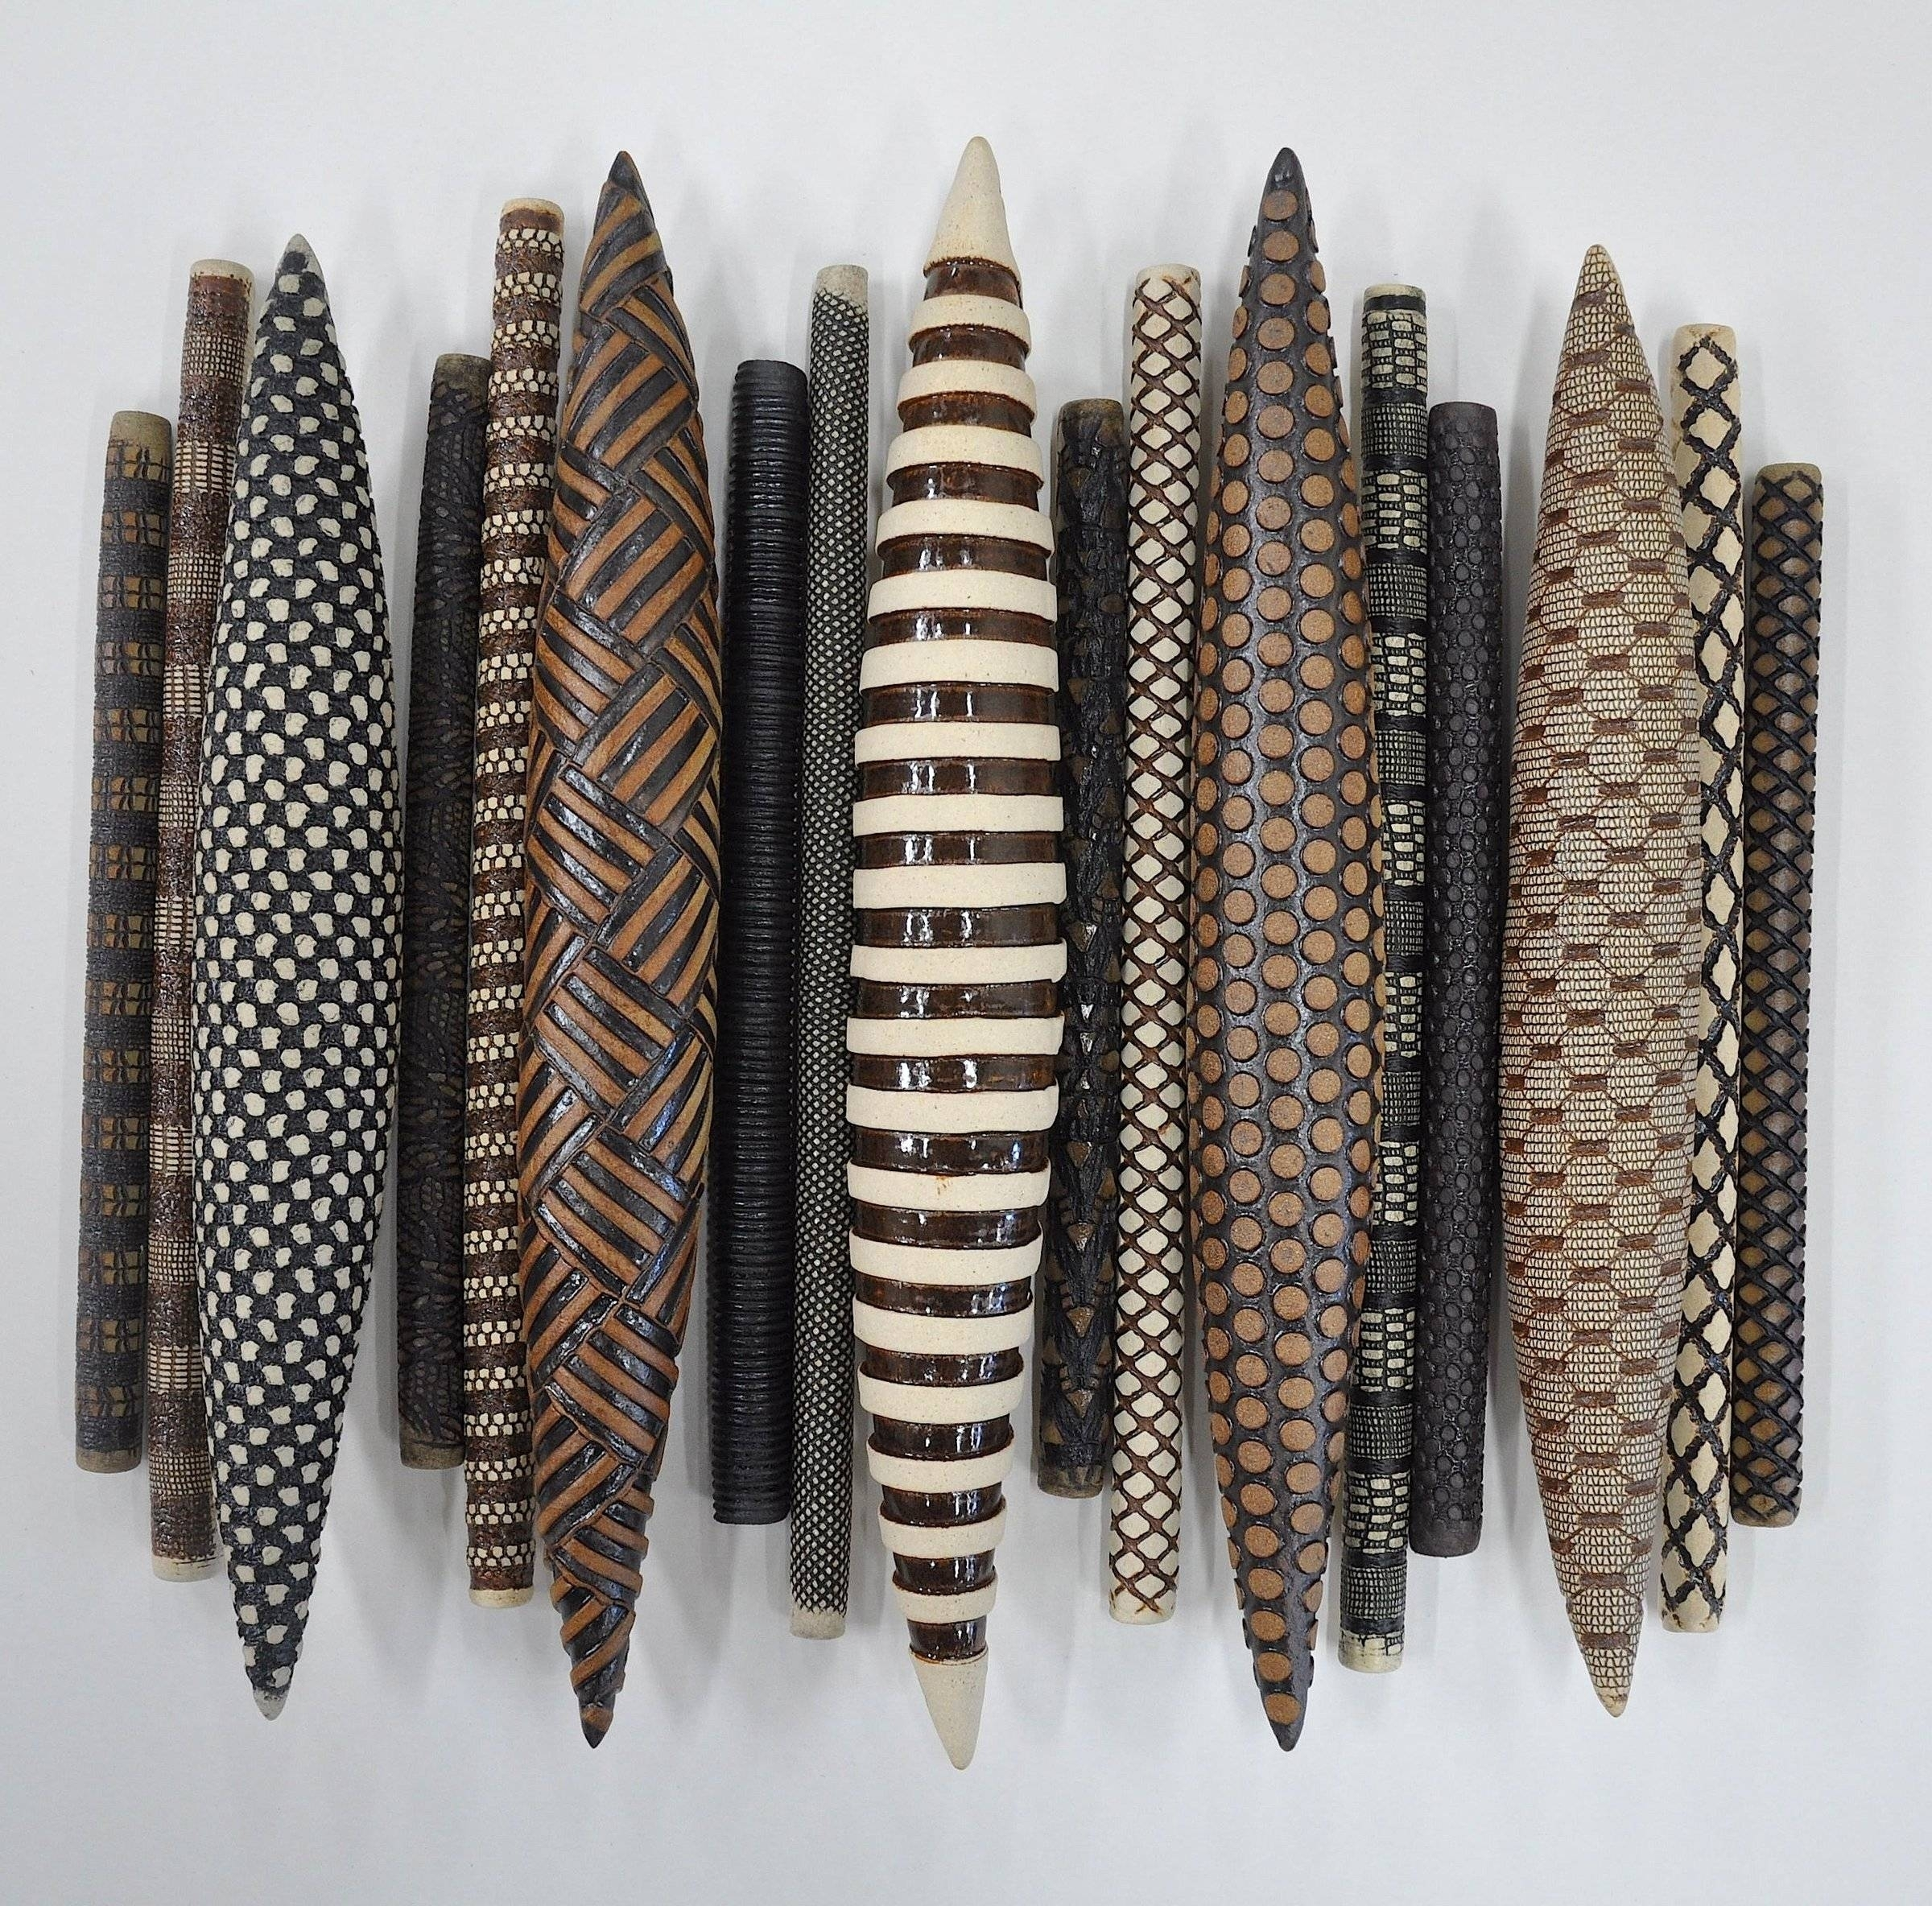 Domestic Markings Kelly Jean Ohl Ceramic Wall Sculpture Throughout for Ceramic Wall Art (Image 13 of 20)